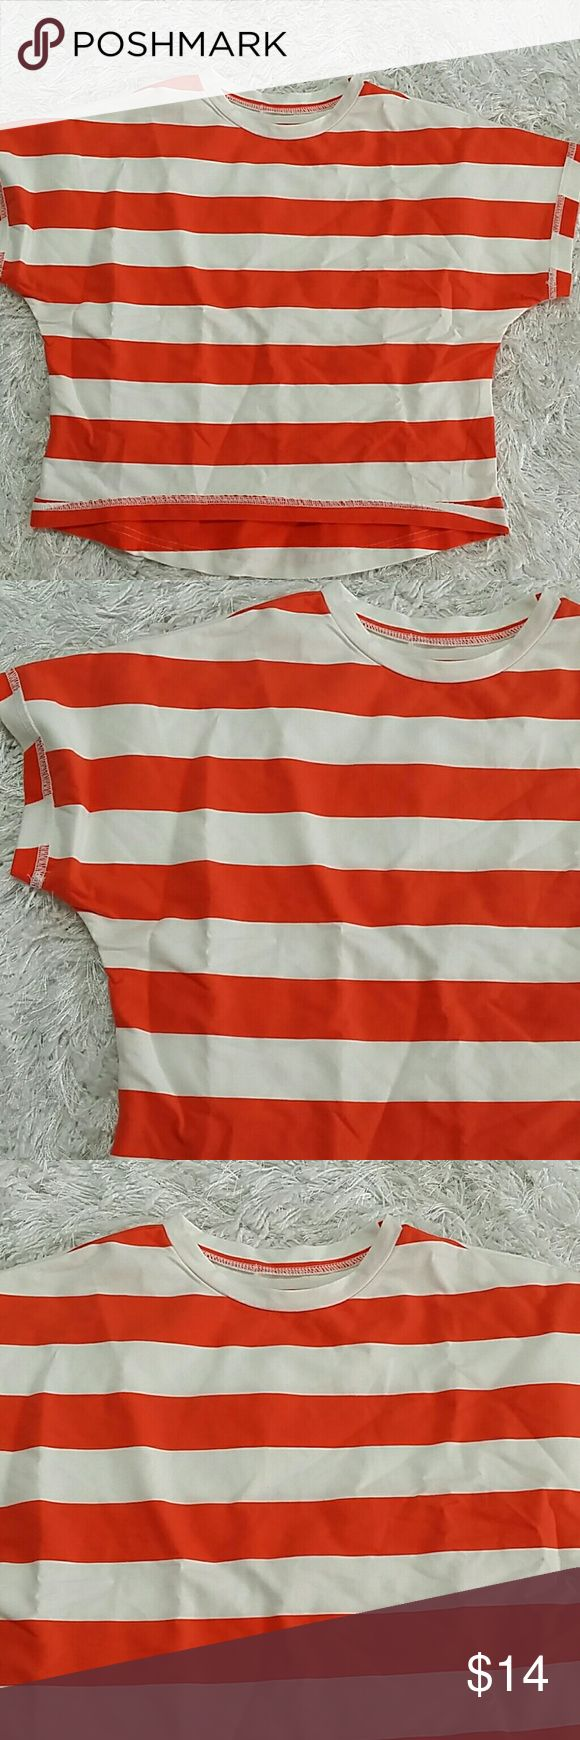 Orange Stripes Short Sleeves top.  Kids Adorable and over sized orange and white stripes top. Will fit 6 - 7 years. This item is brand new and never used. No tags. Shirts & Tops Tees - Short Sleeve